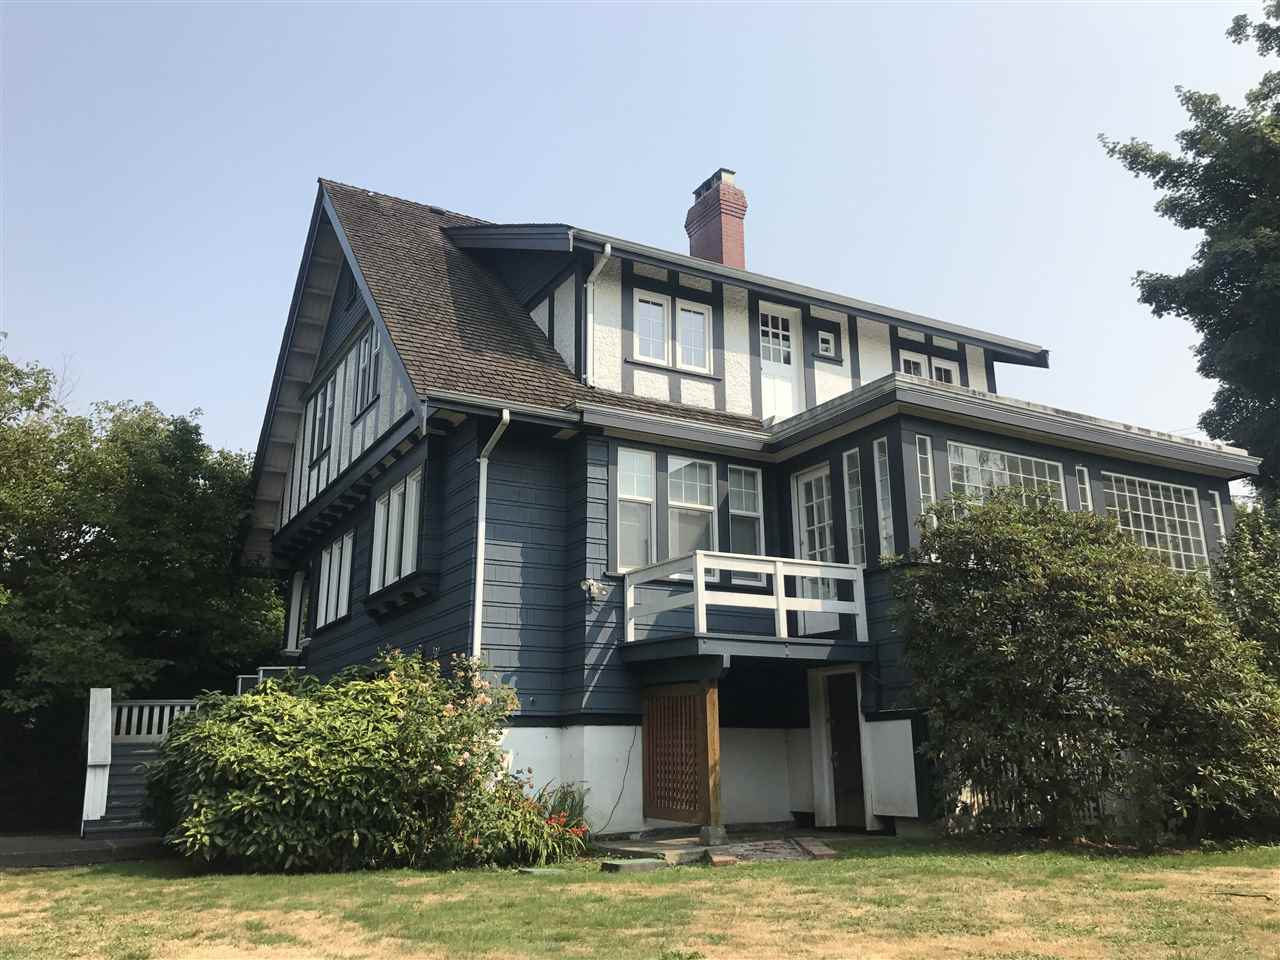 Massive 115' X 125' lot over 14,000 sq.ft. in the heart of prestigious First Shaughnessy! Best value priced under assessment value. Spacious house boosting 4,700 sq.ft living space with 7 bedrooms. Self-contained basement with separate entrance. Treelined private yard and triple garage. Perfect location with shopping, park, church, and recreation nearby. 10 minutes to UBC & 5 minutes to downtown. Perfect for investment and re-built/ renovation projects! School catchment: Shaughnessy Elementary, Prince of Wales Secondary